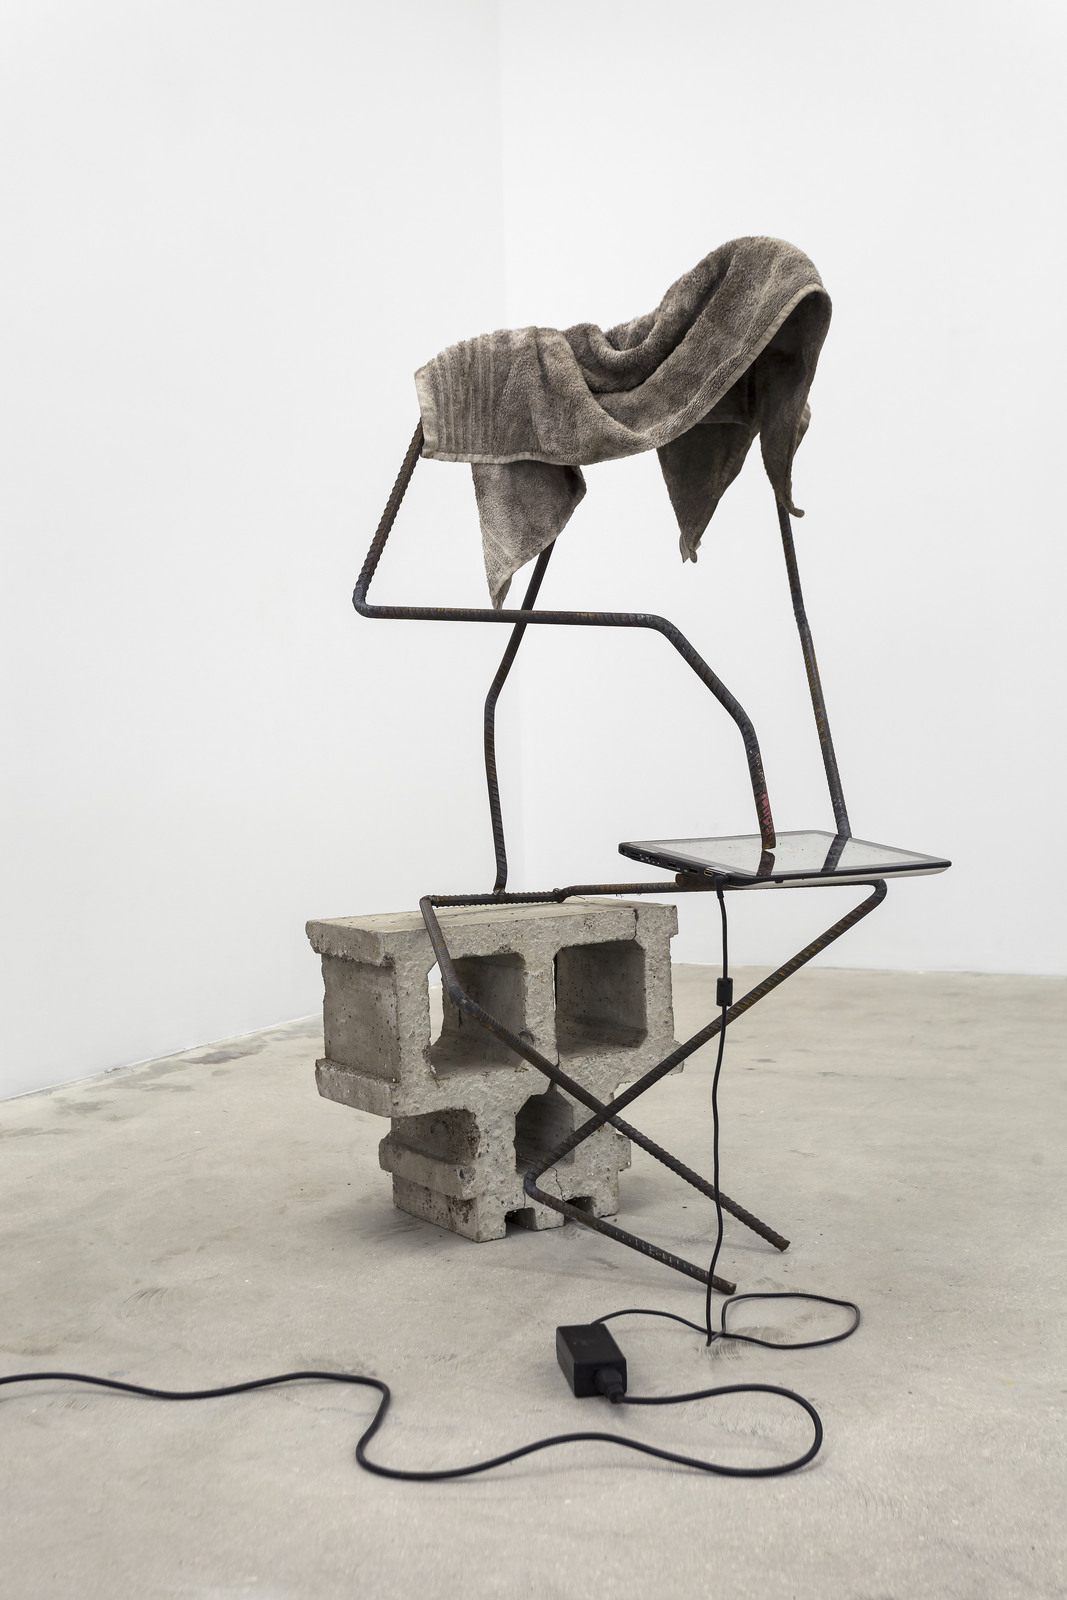 Versteeg_Surfer (with head)_cement, welded steel, internet-connected computer program, tablet, towel_2016